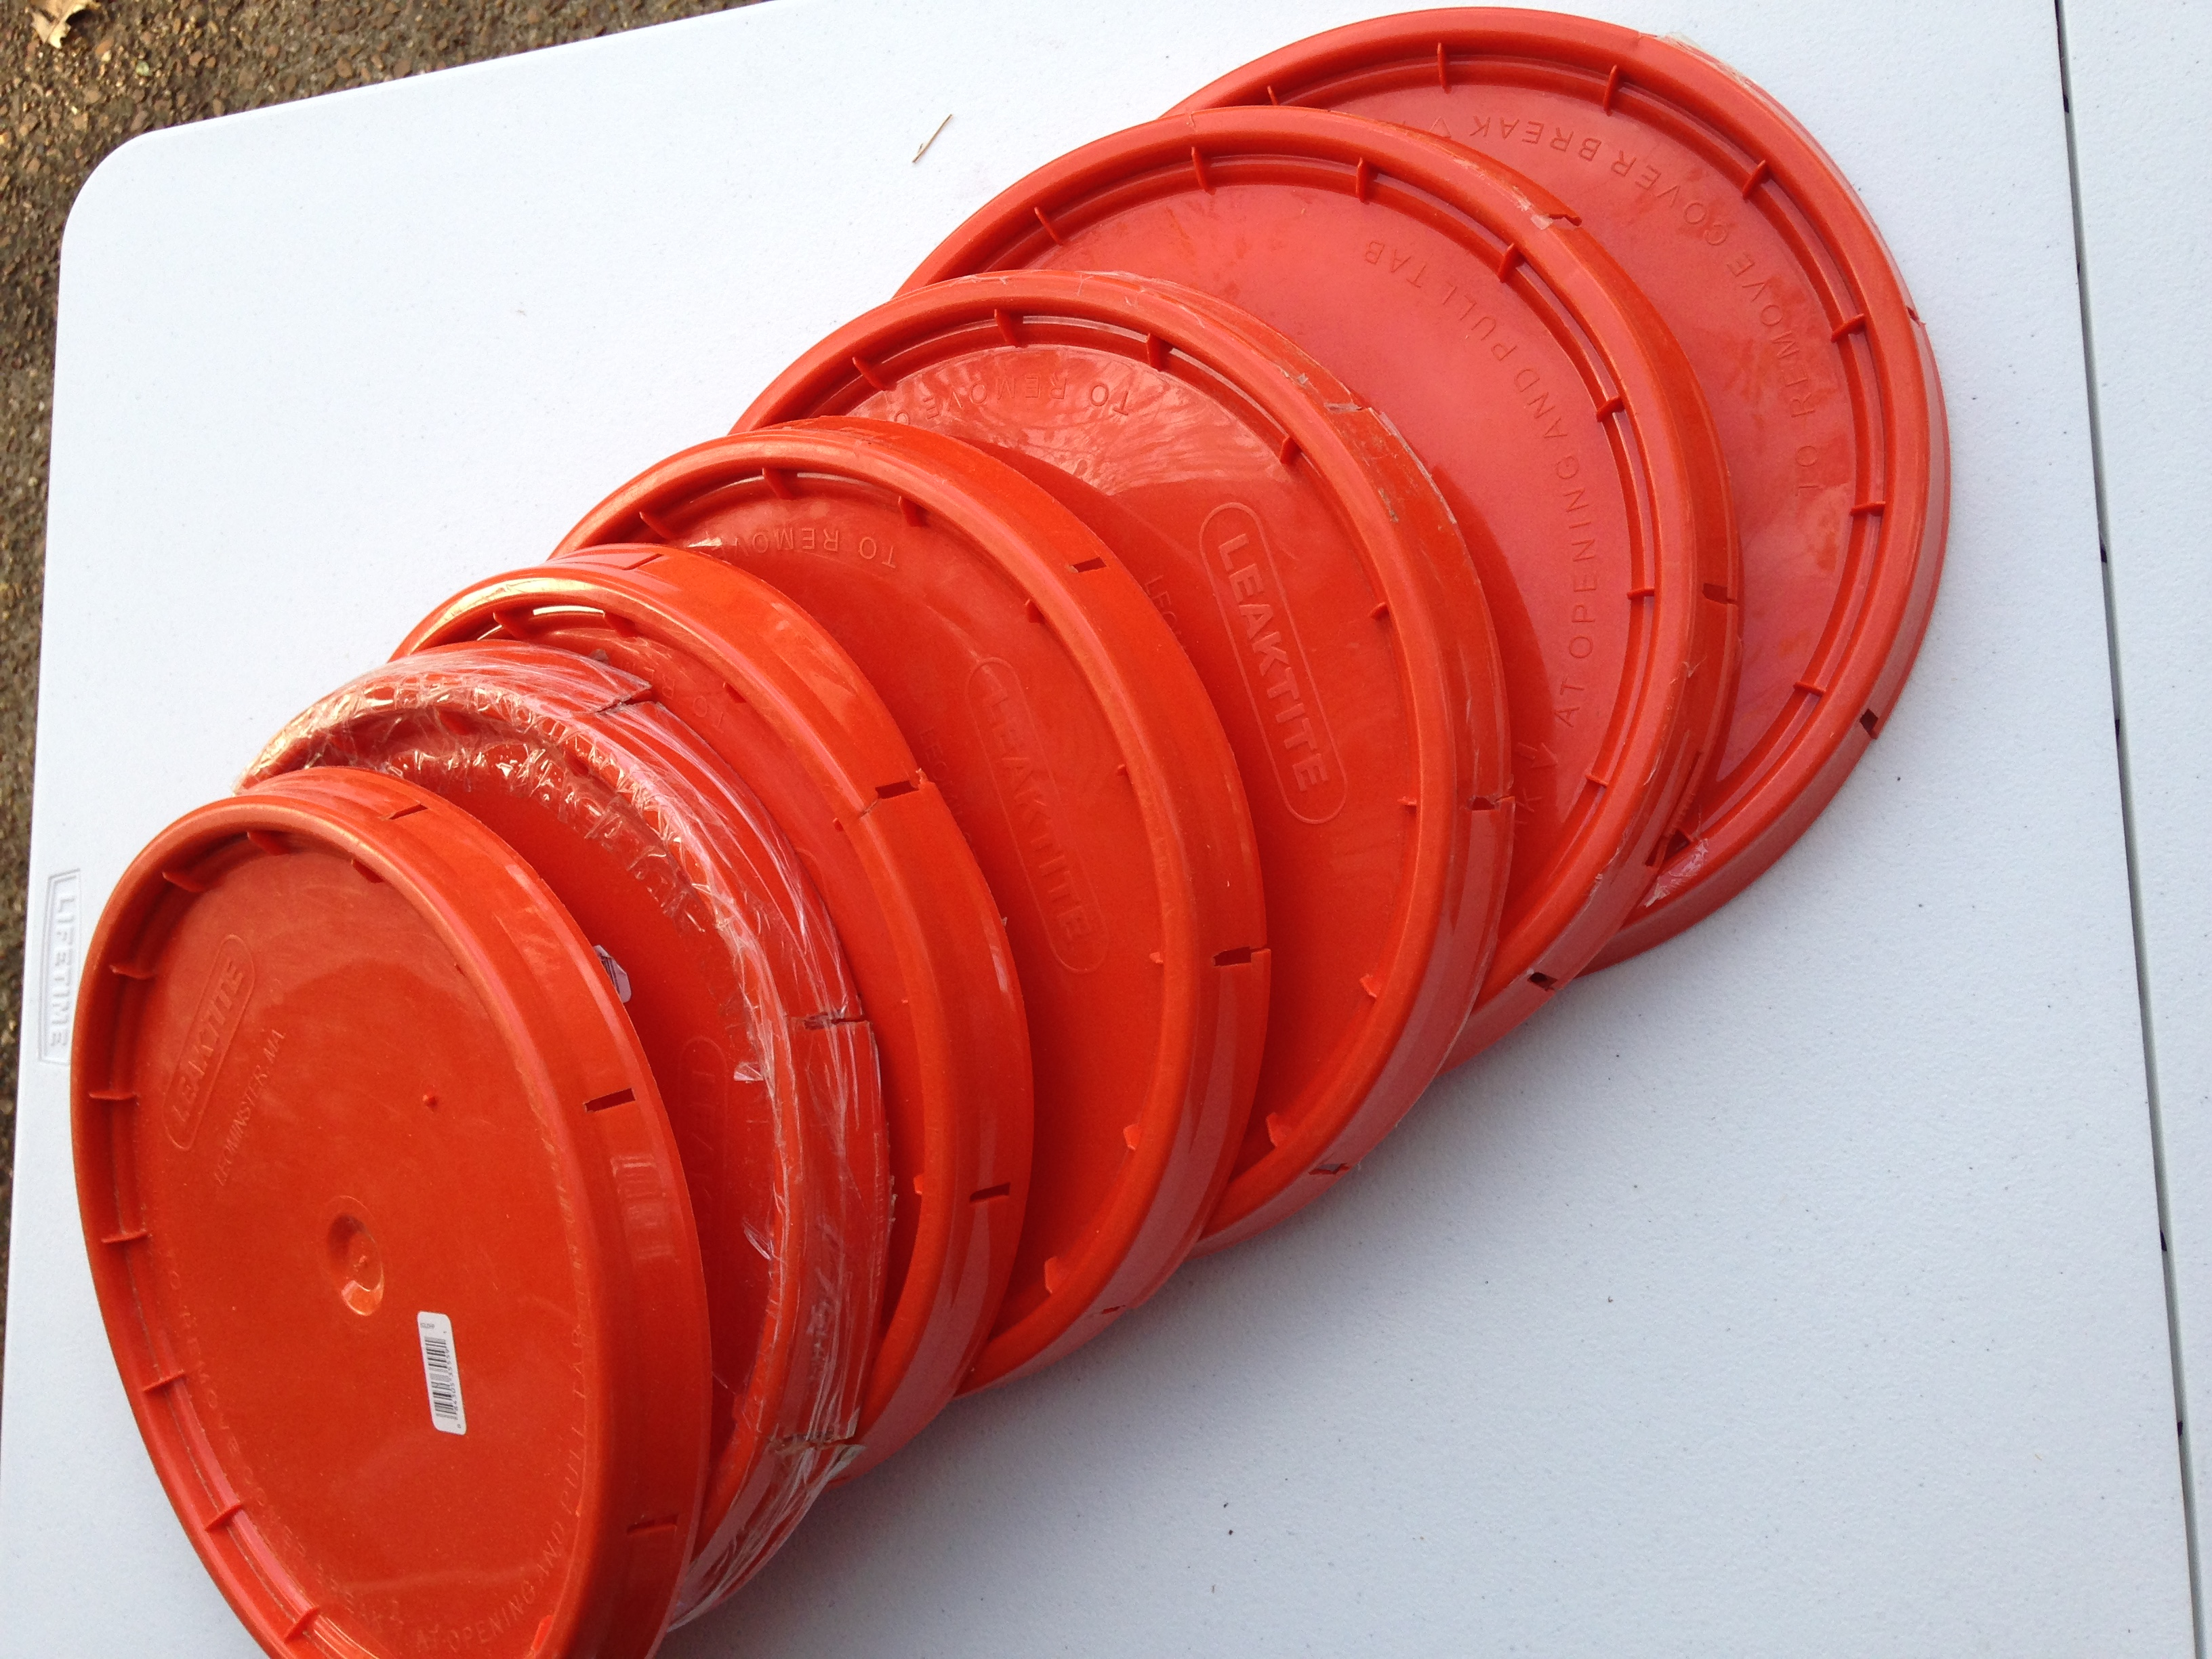 Used   Home Depot 5GLD ORANGE LID for 5GL HOMER PAIL  Set...